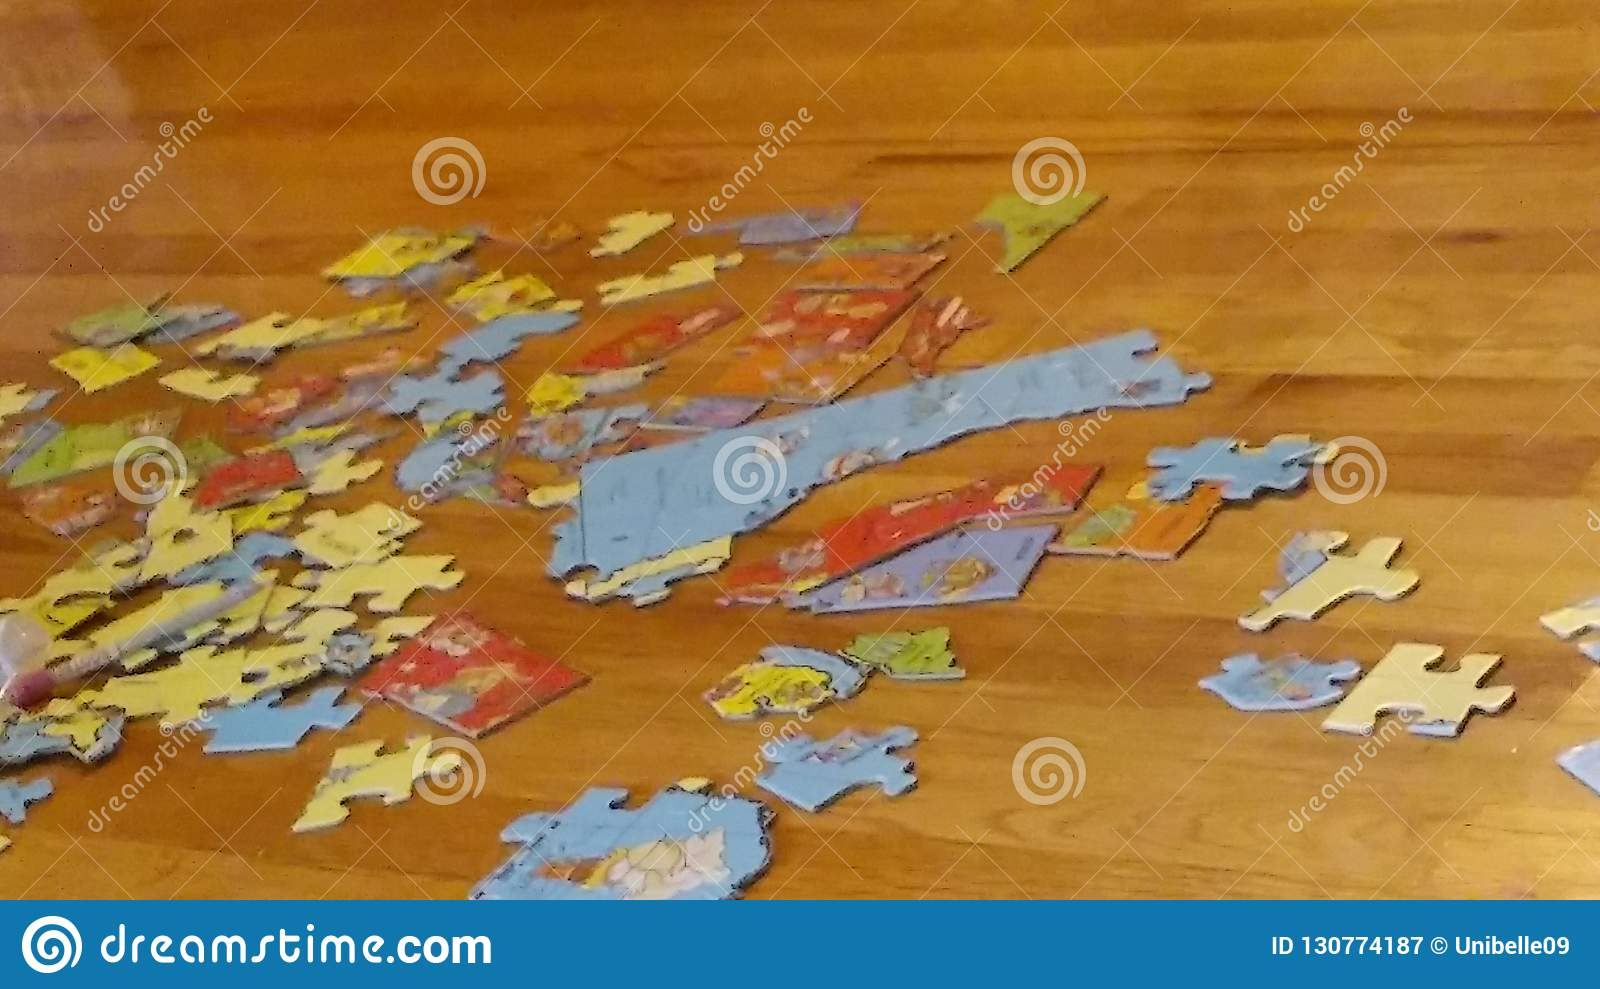 United States map puzzle stock image. Image of united ...